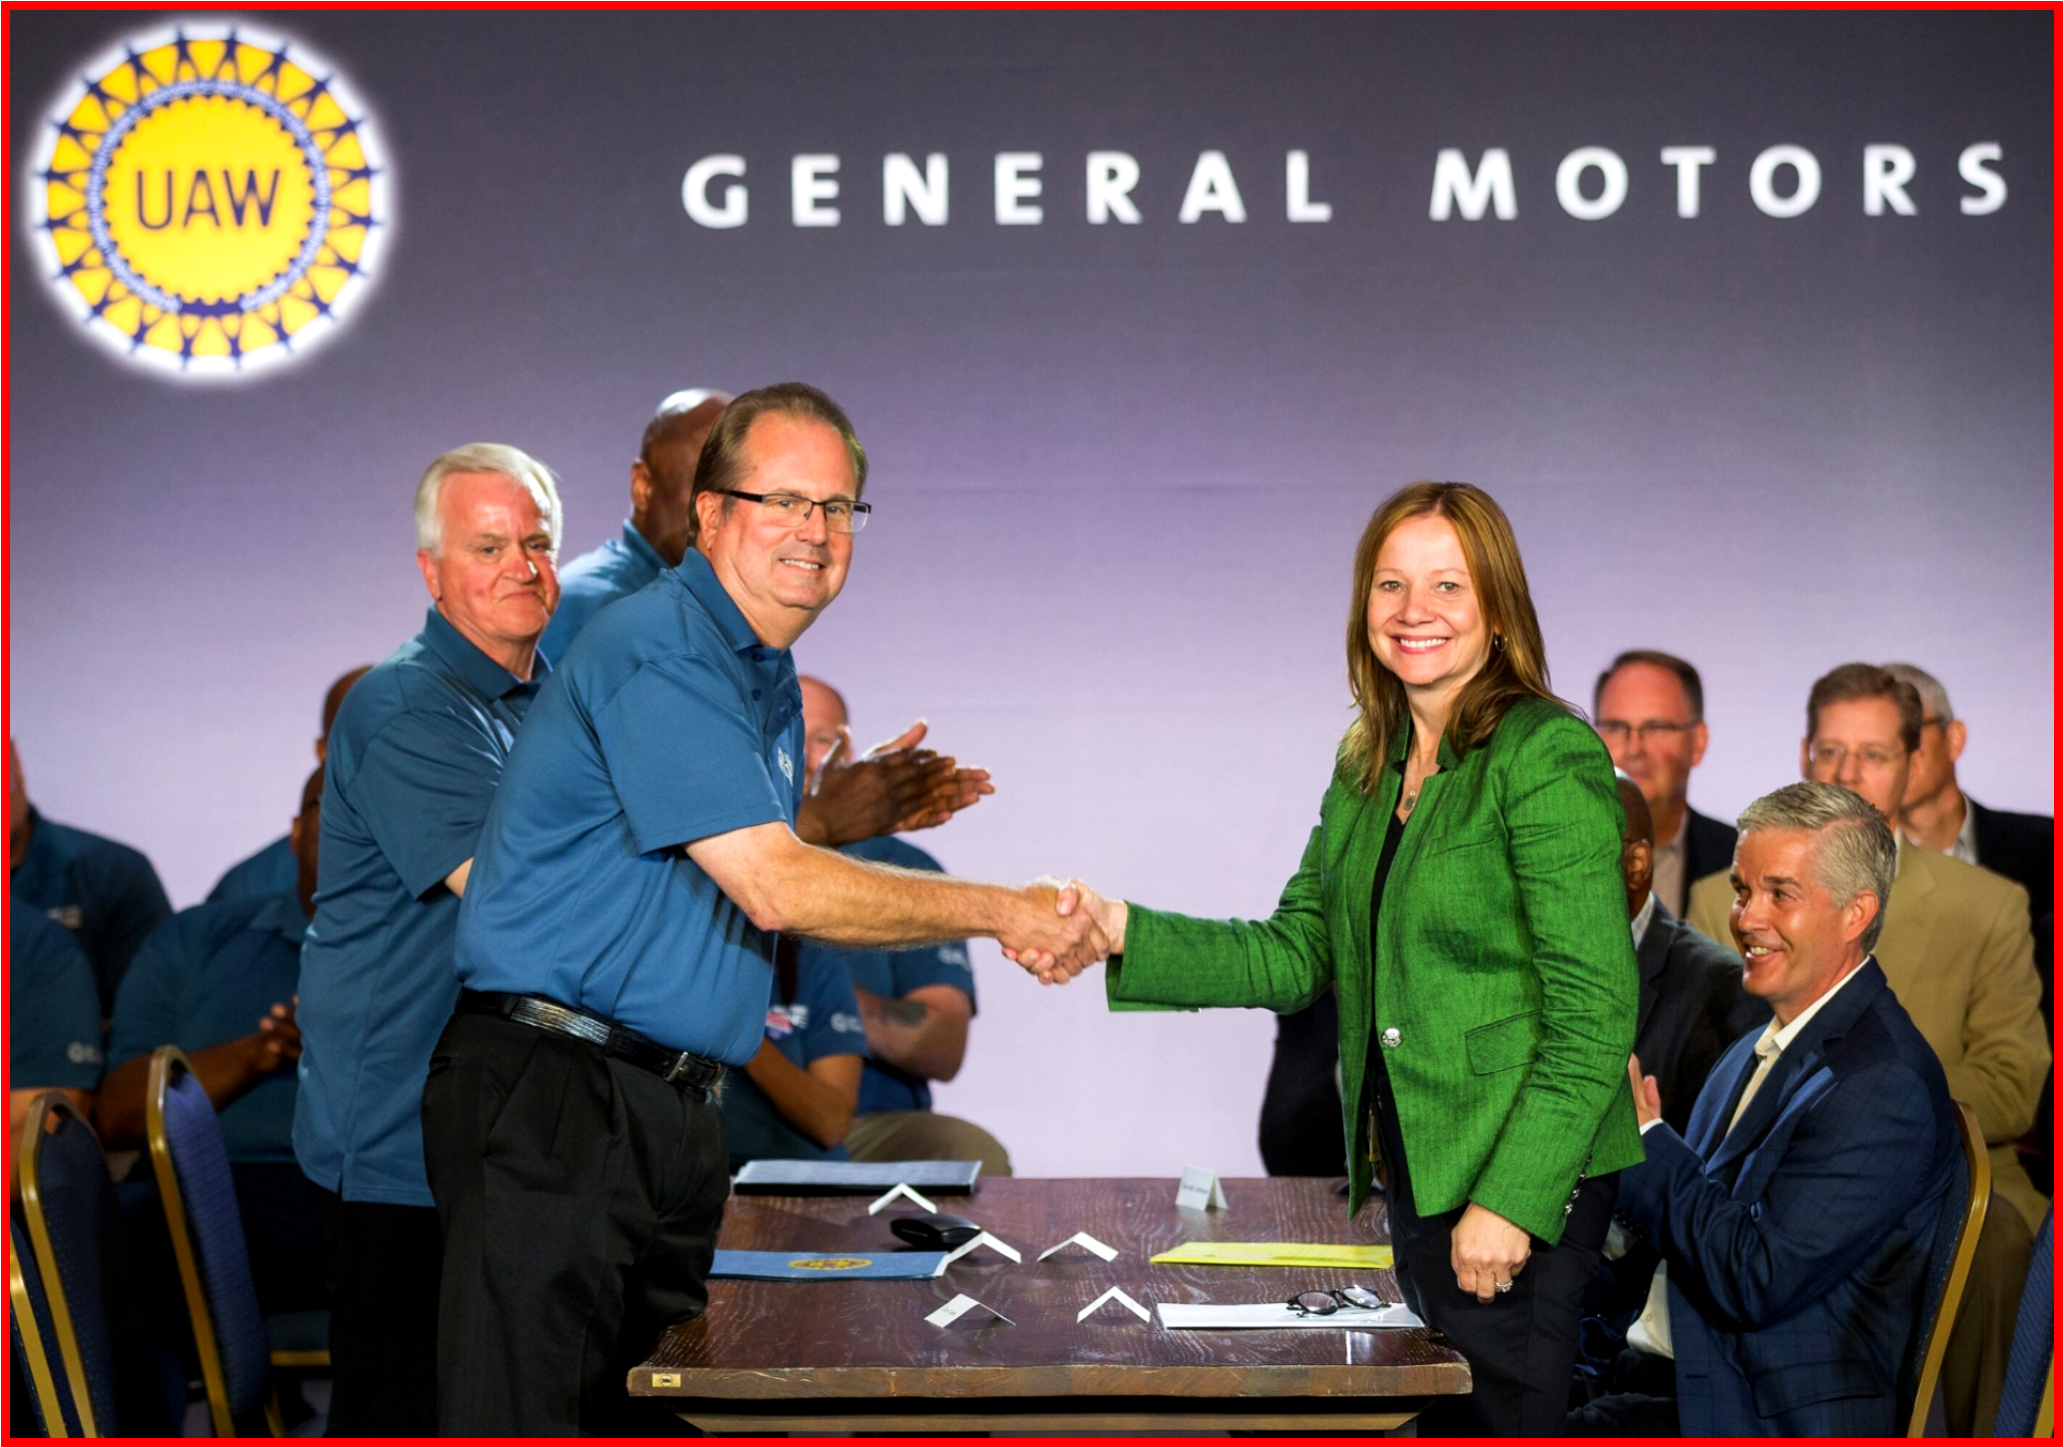 AutoInformed.com on GM andthe UAW